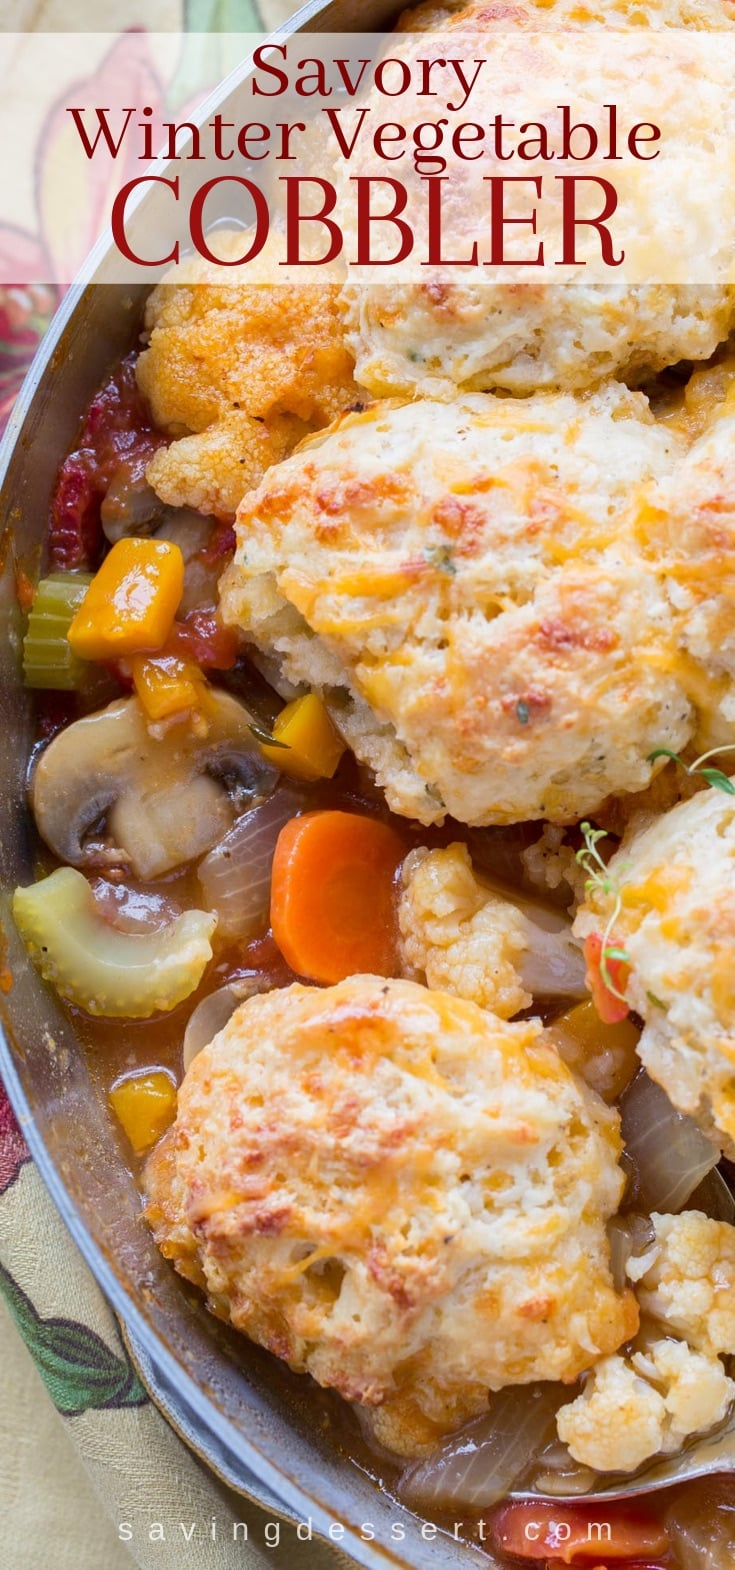 A skillet filled with a savory winter vegetable cobbler topped with herbed cheese biscuits